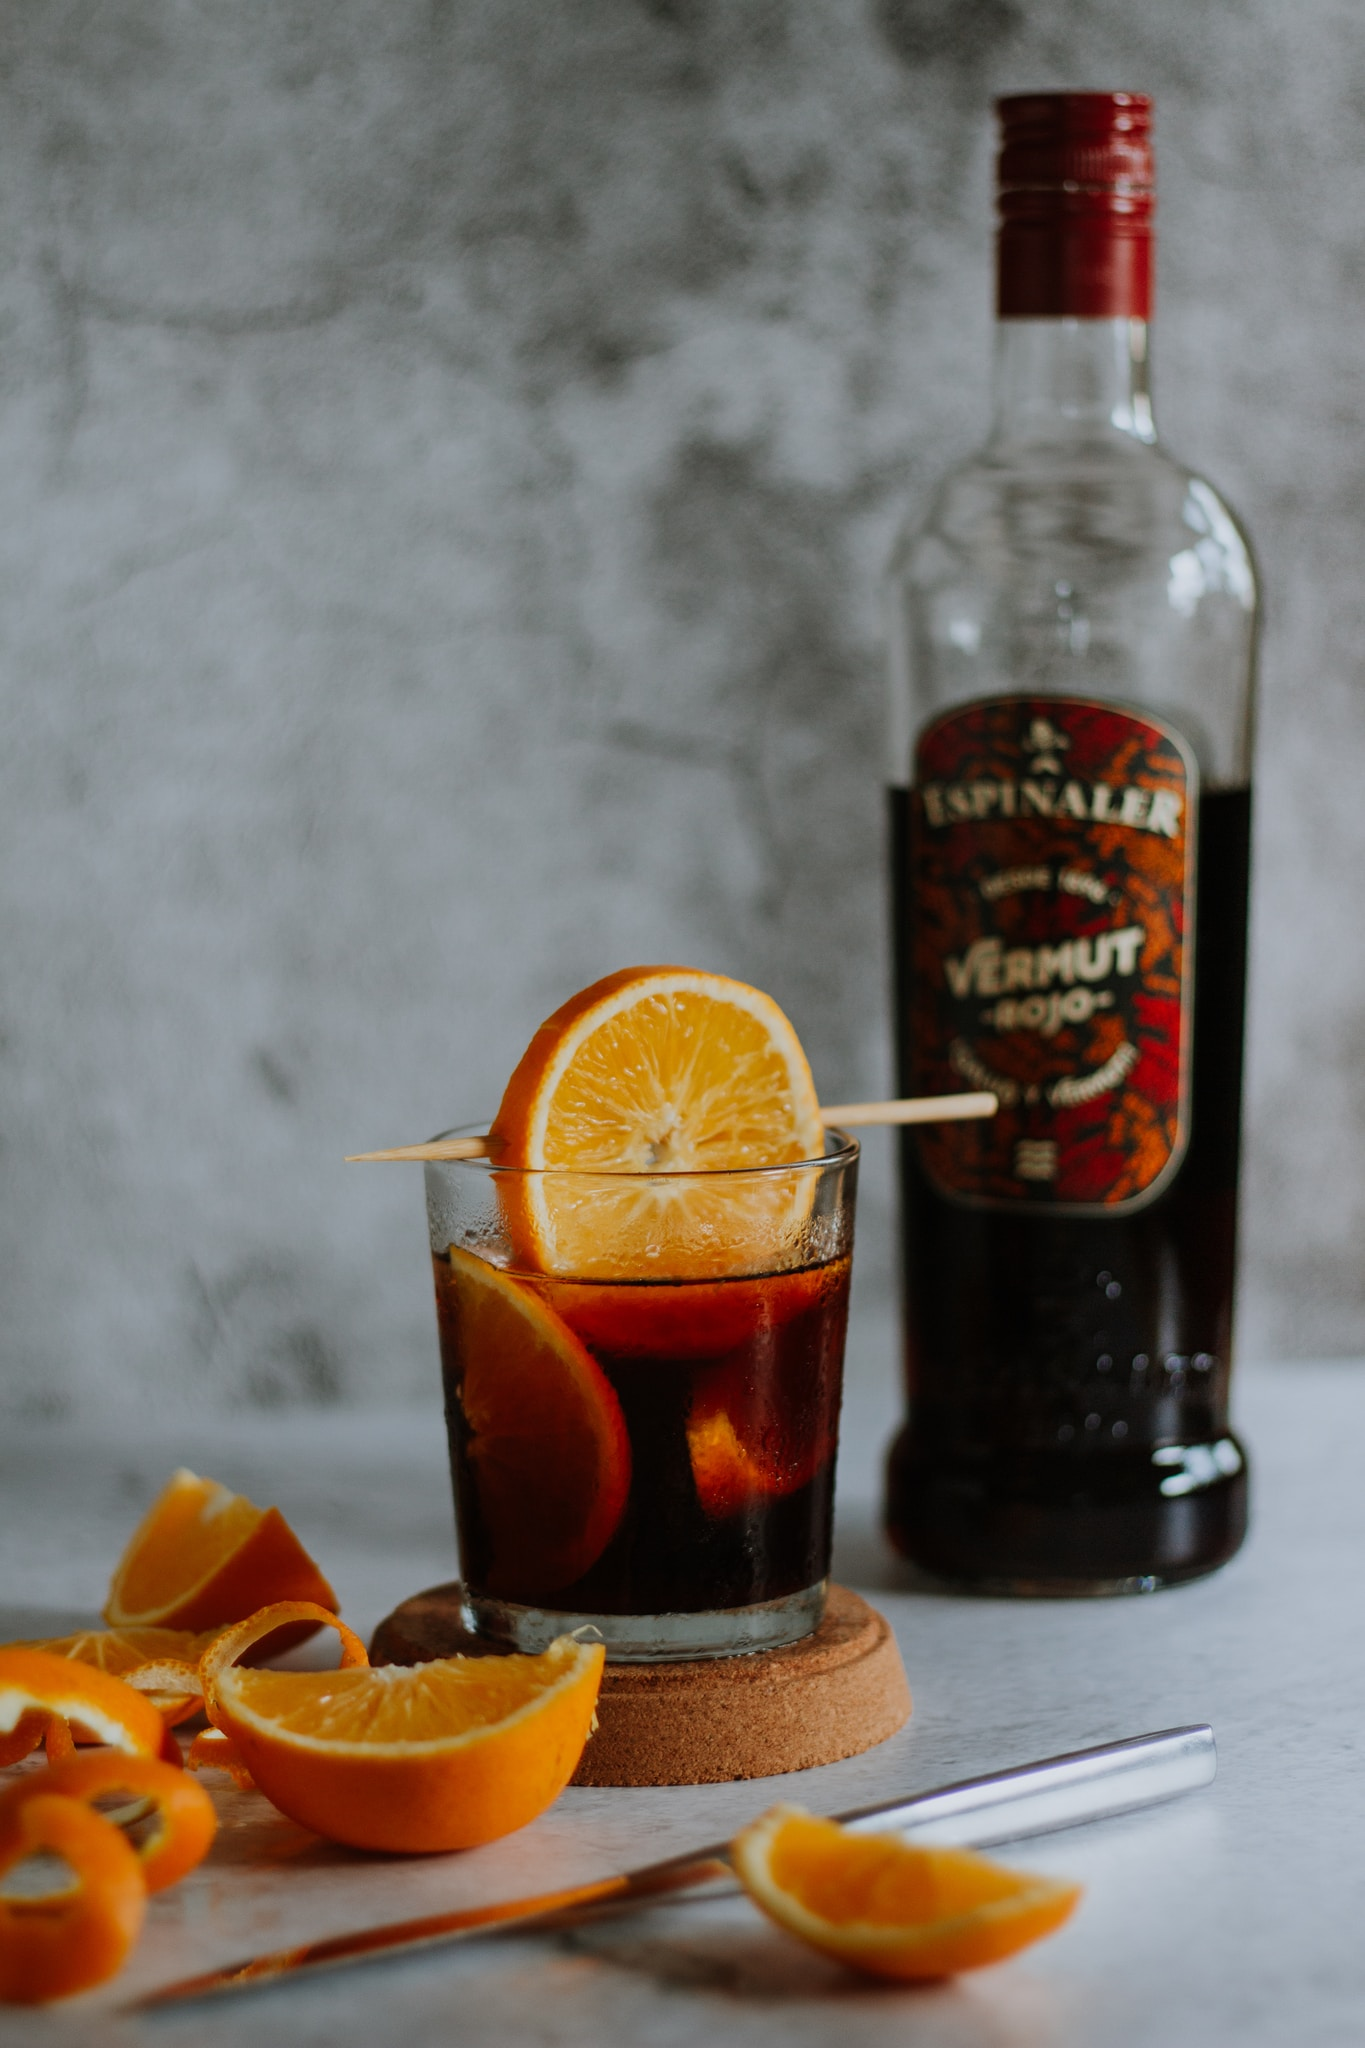 Substitutes for Vermouth – What can I use instead?